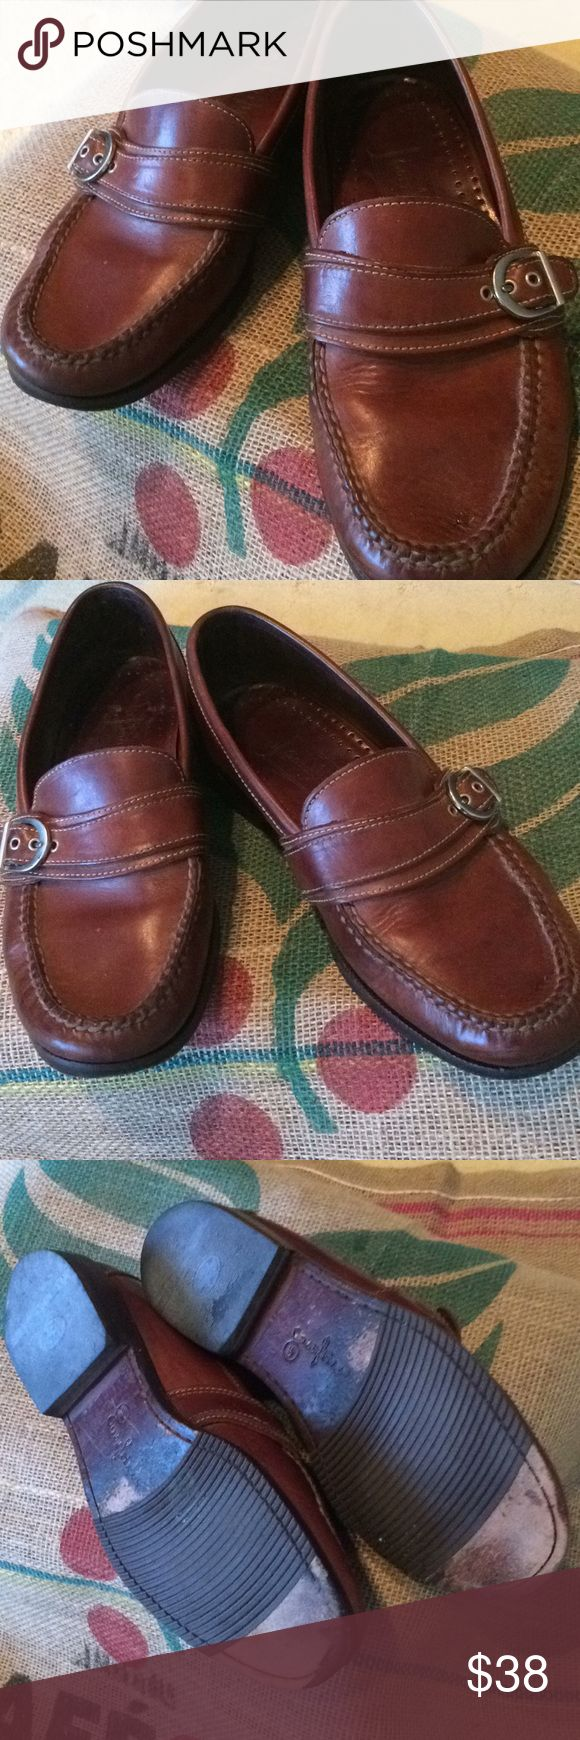 Cole Haan Loafers. Size 9. Cole Haan Loafers. Size 9. Cole Haan Shoes Loafers & Slip-Ons